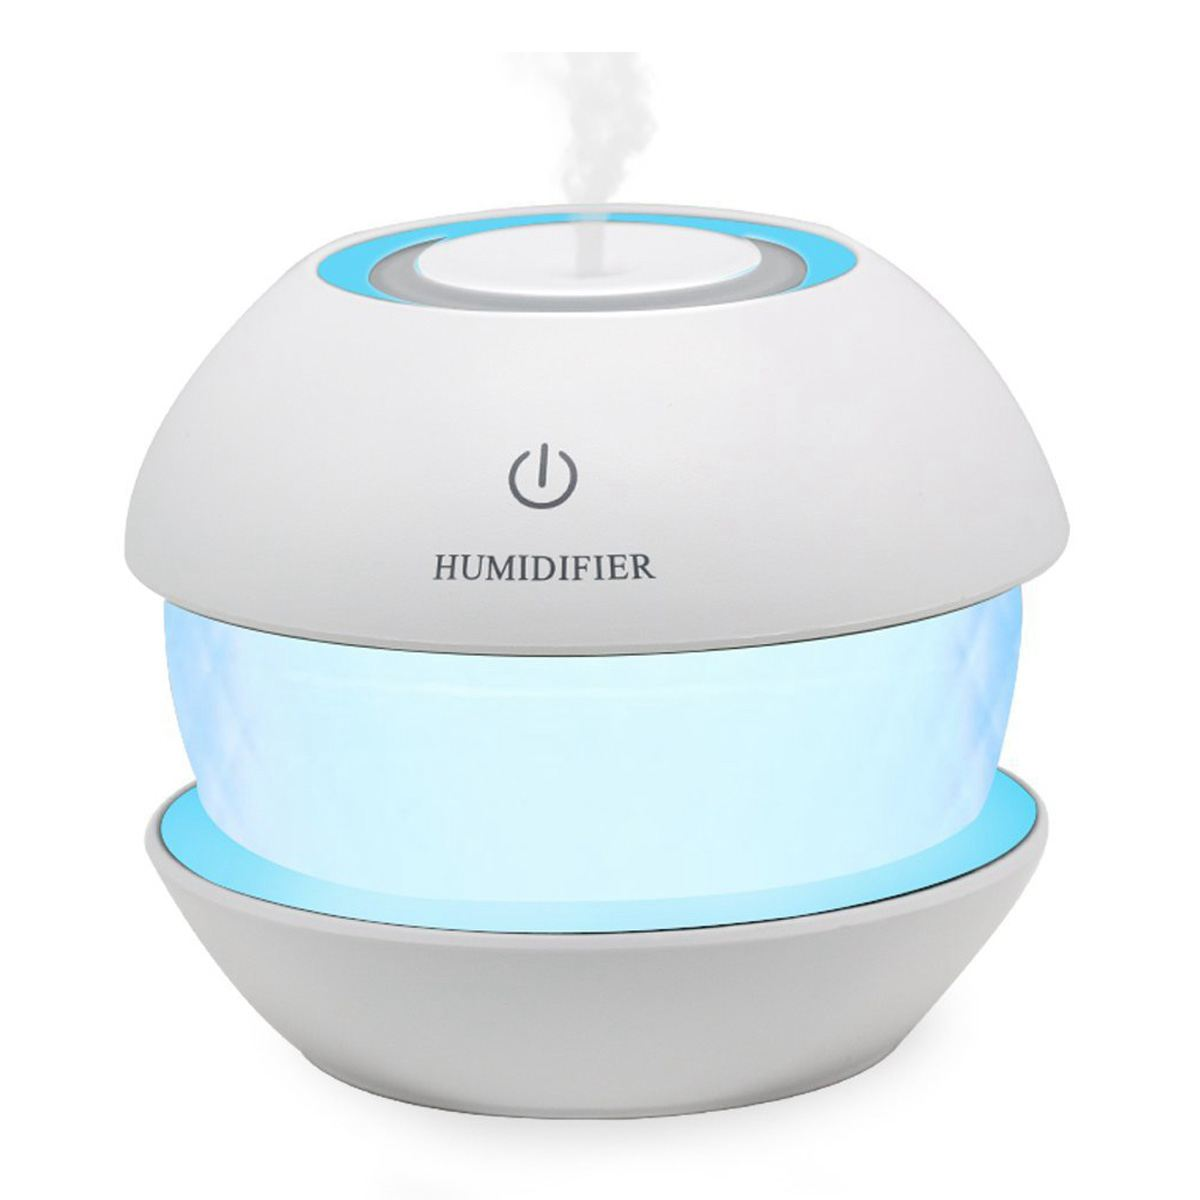 Ultrasonic Cool Mist Humidifiers Diffuser - Air Humidifier For Car, Office, Spa, Yoga, 150ml Round Spray USB Humidifier With L tinton life usb interface air humidifier ergonomic spray angle vehicle office home car humidifier